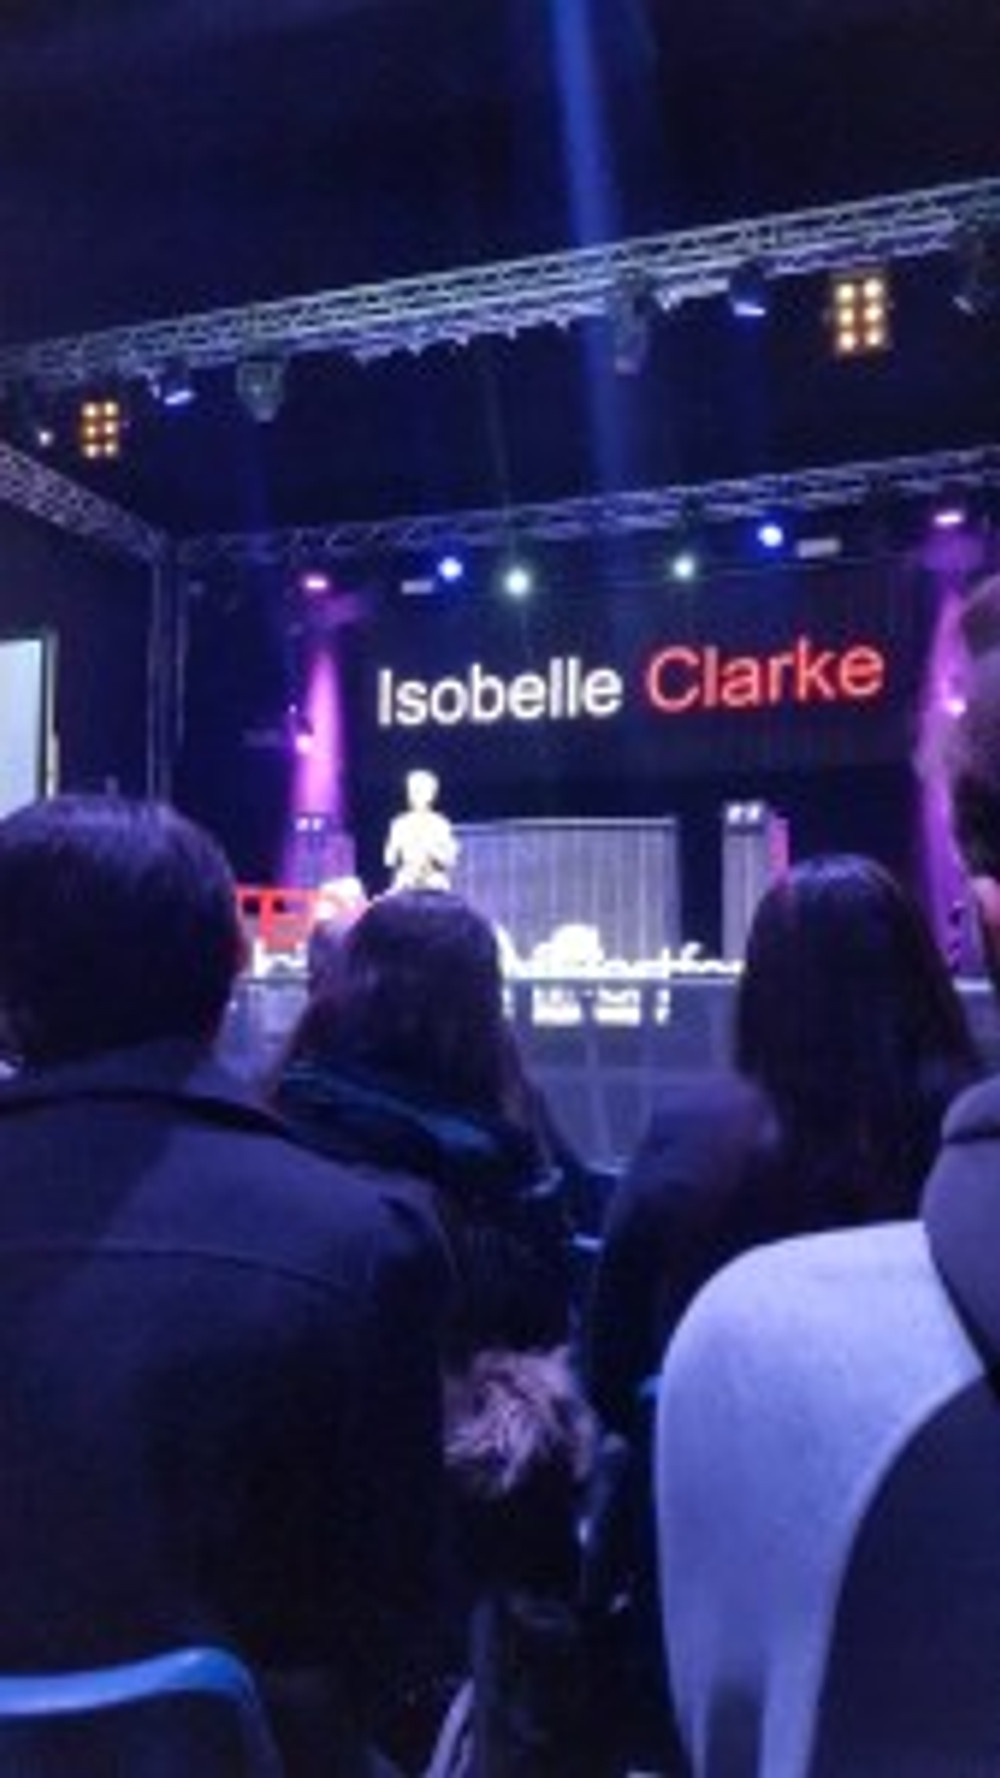 Isobelle Clarke on stage - Shelby Loasby